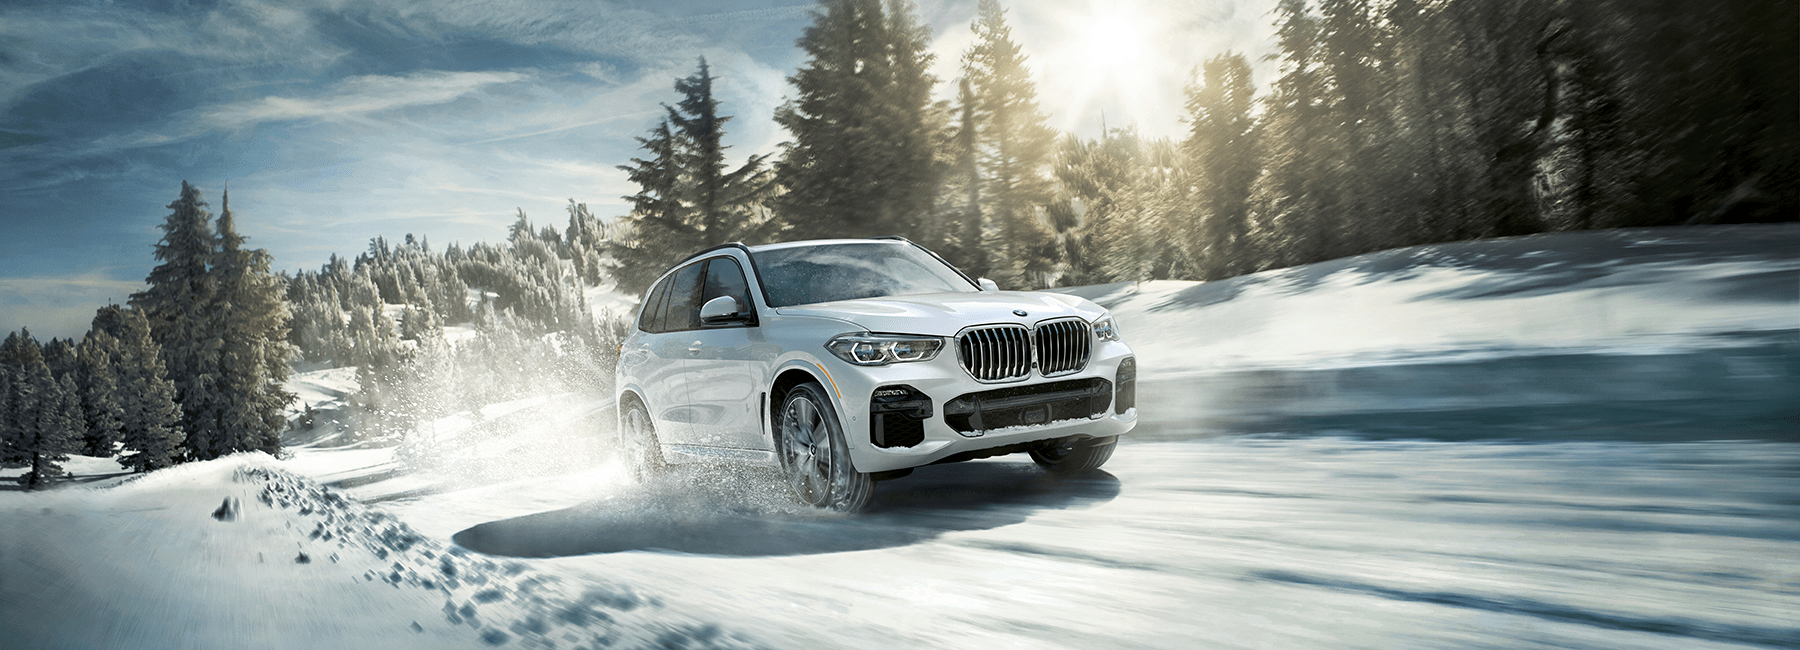 A white BMW X5 handles well over snow